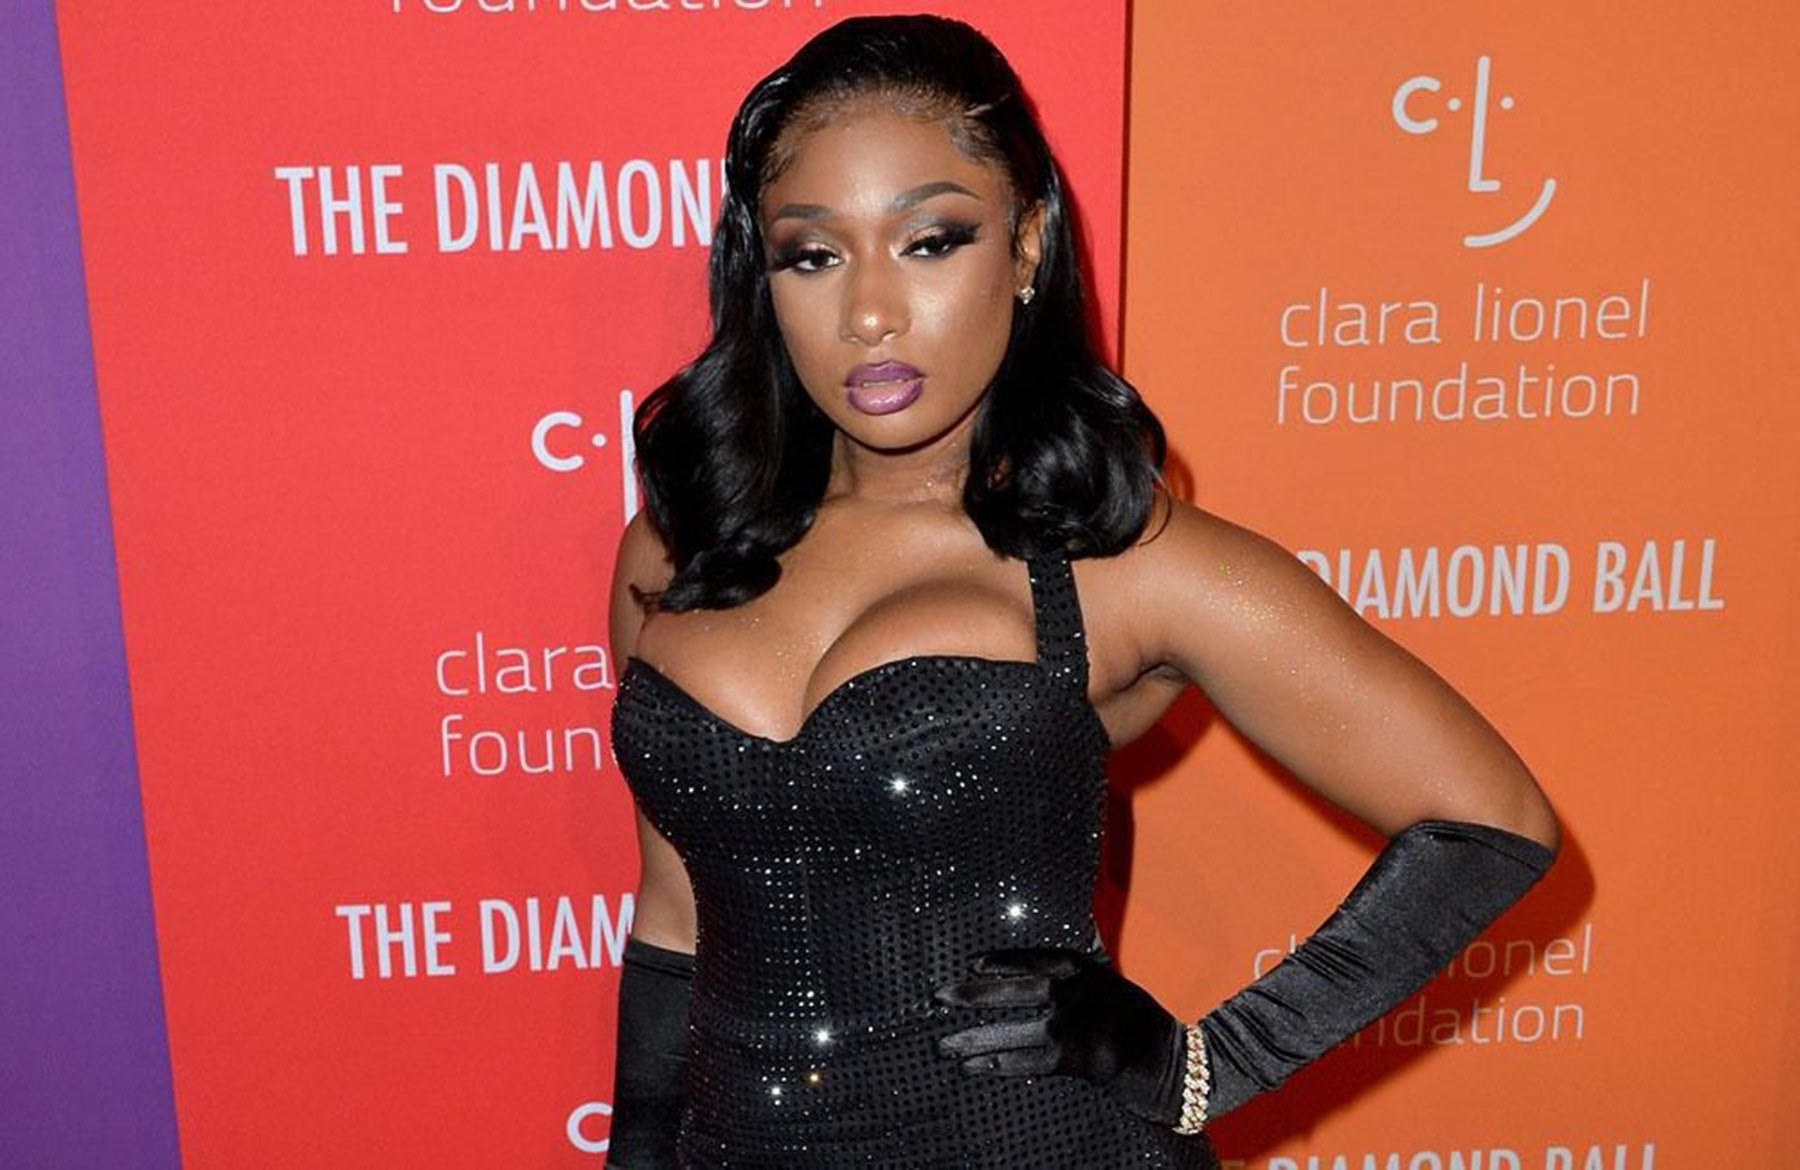 tory-lanez-reportedly-made-this-surprising-move-amid-the-megan-thee-stallion-shooting-scandal